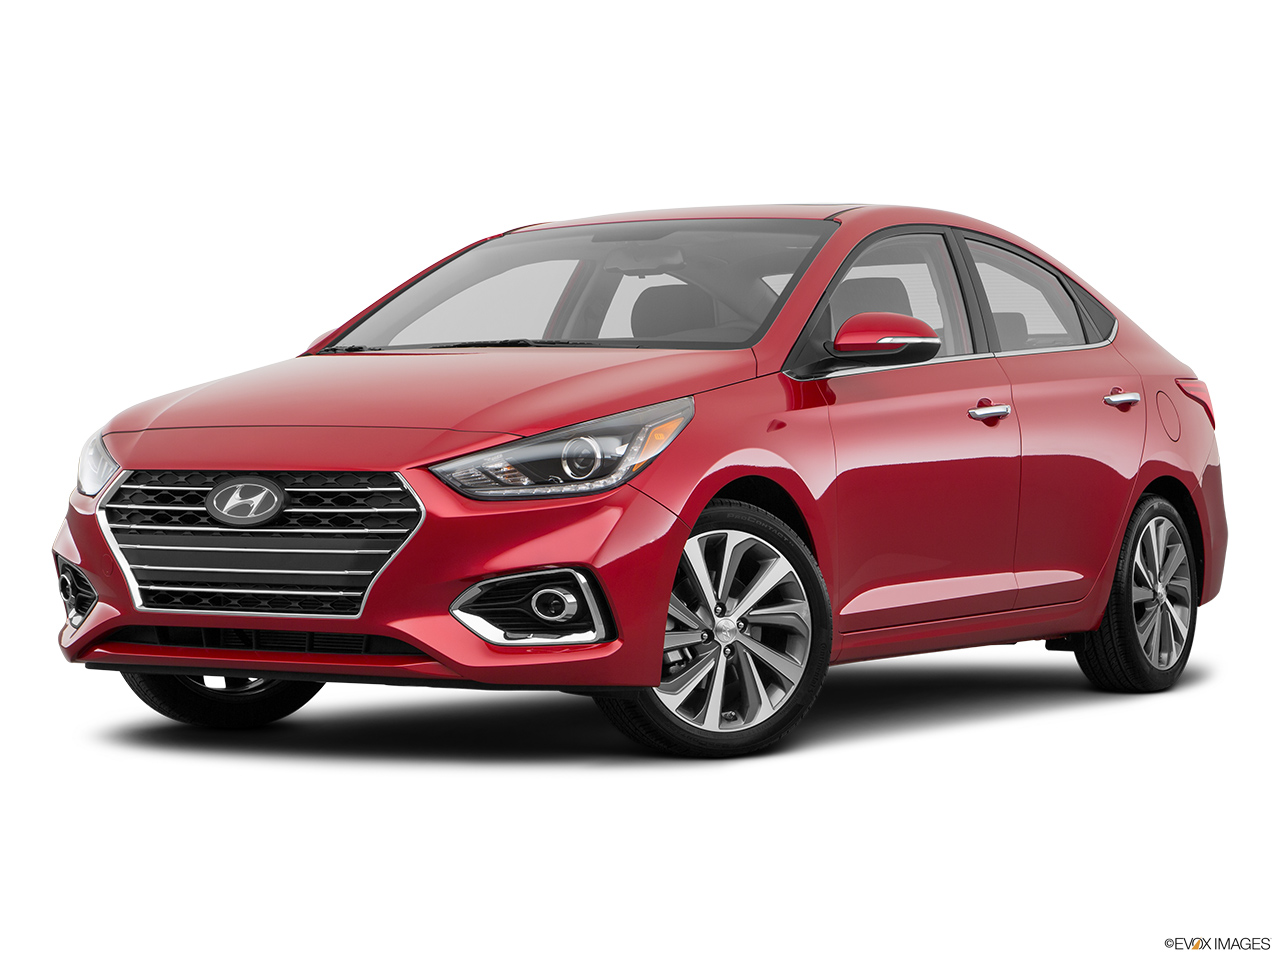 2018 Hyundai Accent Limited 4Dr FWD sedan Pomegranate Red Fuel Efficient Cars Canada